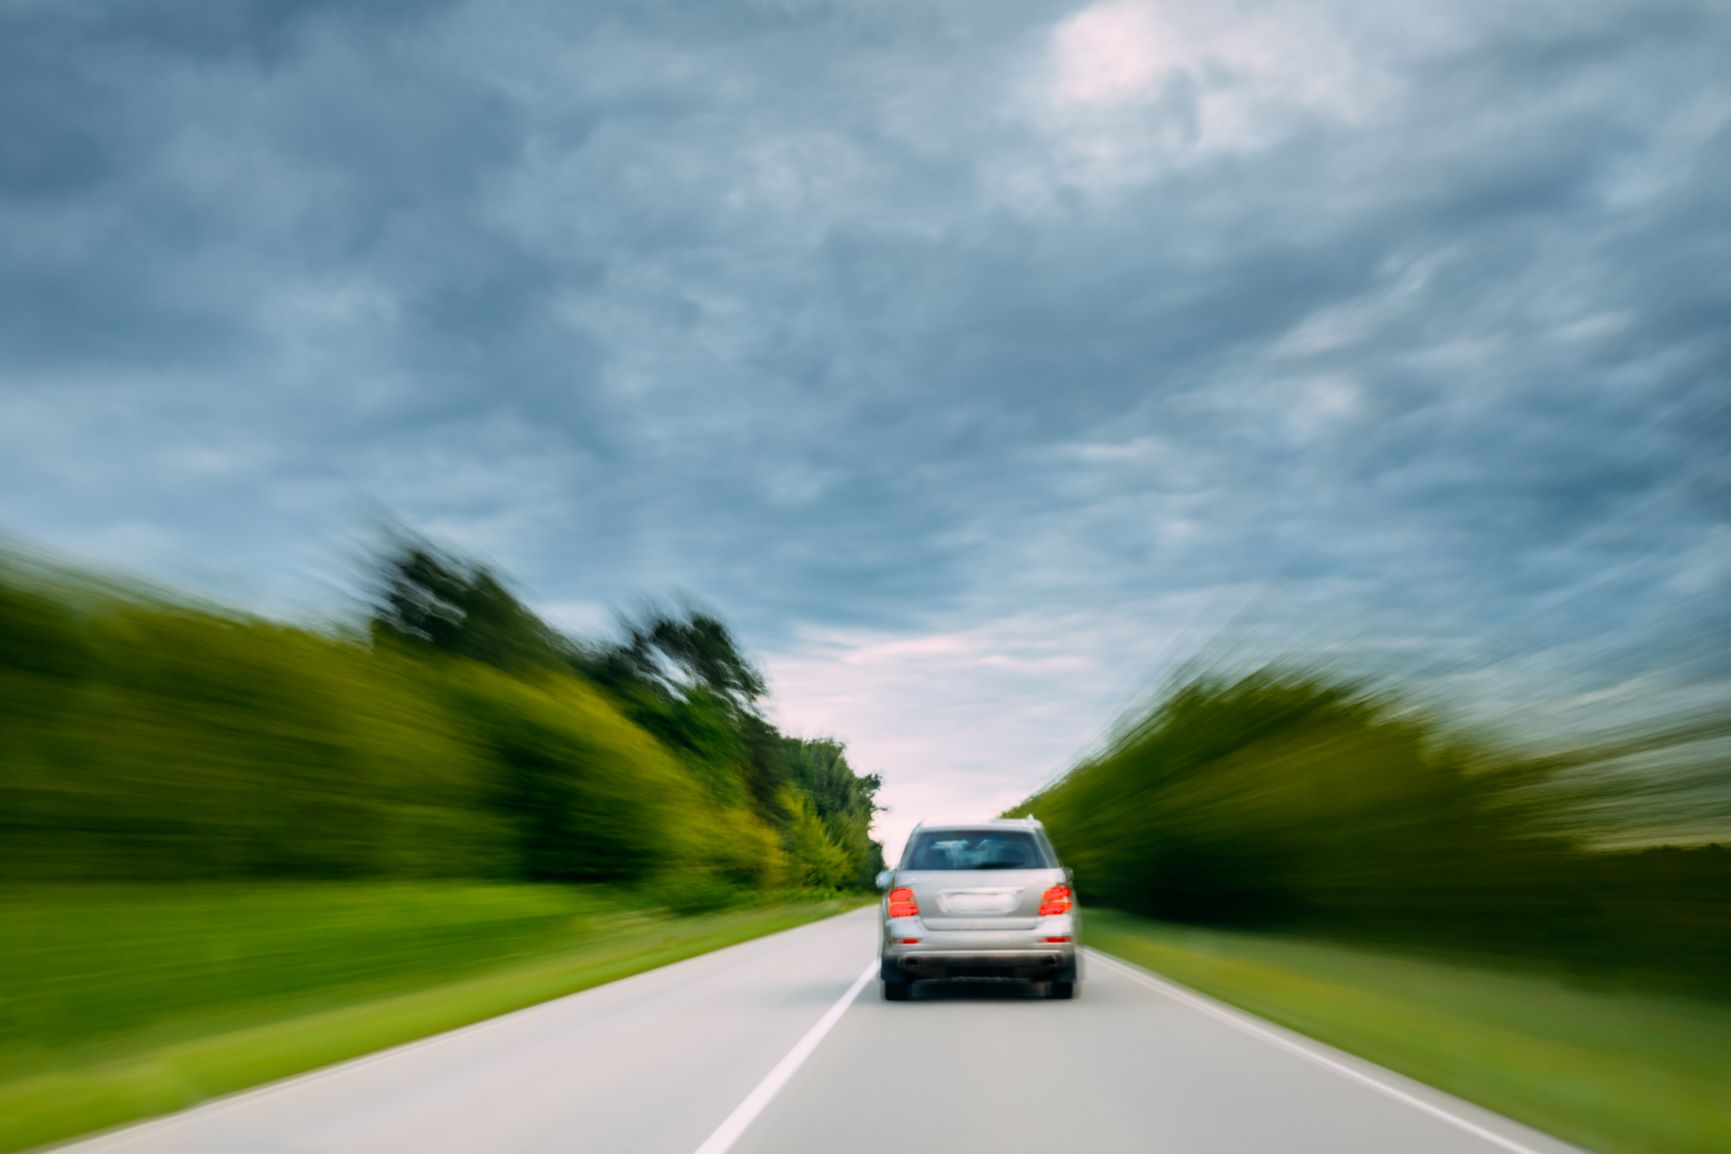 abstract natural blurred background of luxury suv PLC6MXJ